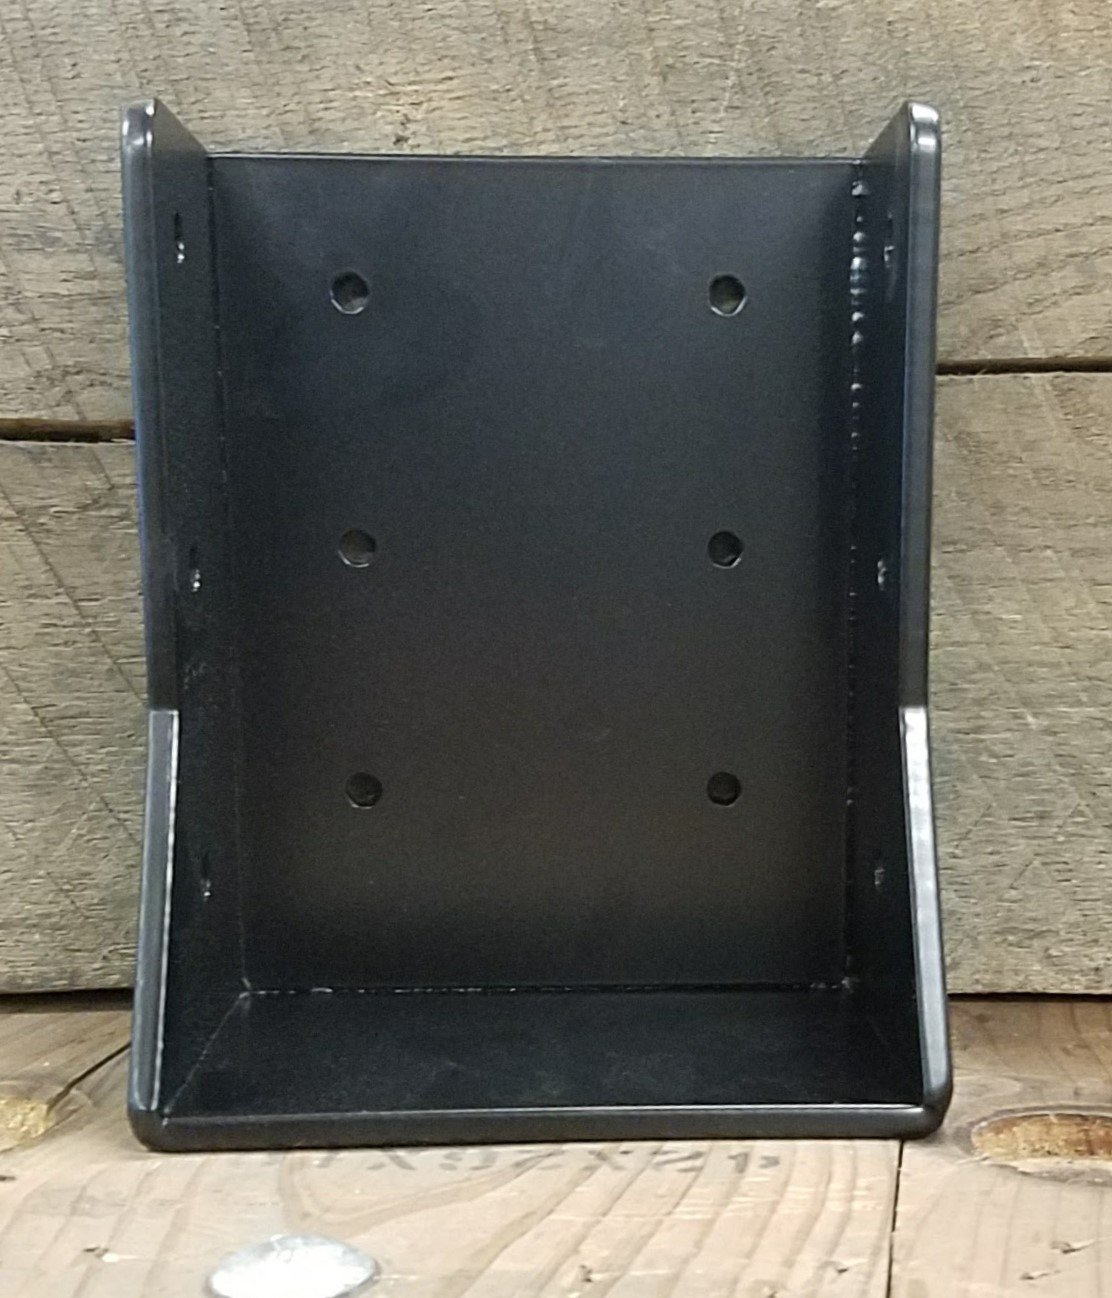 Joist Hangers with Inside or Hidden Flanges